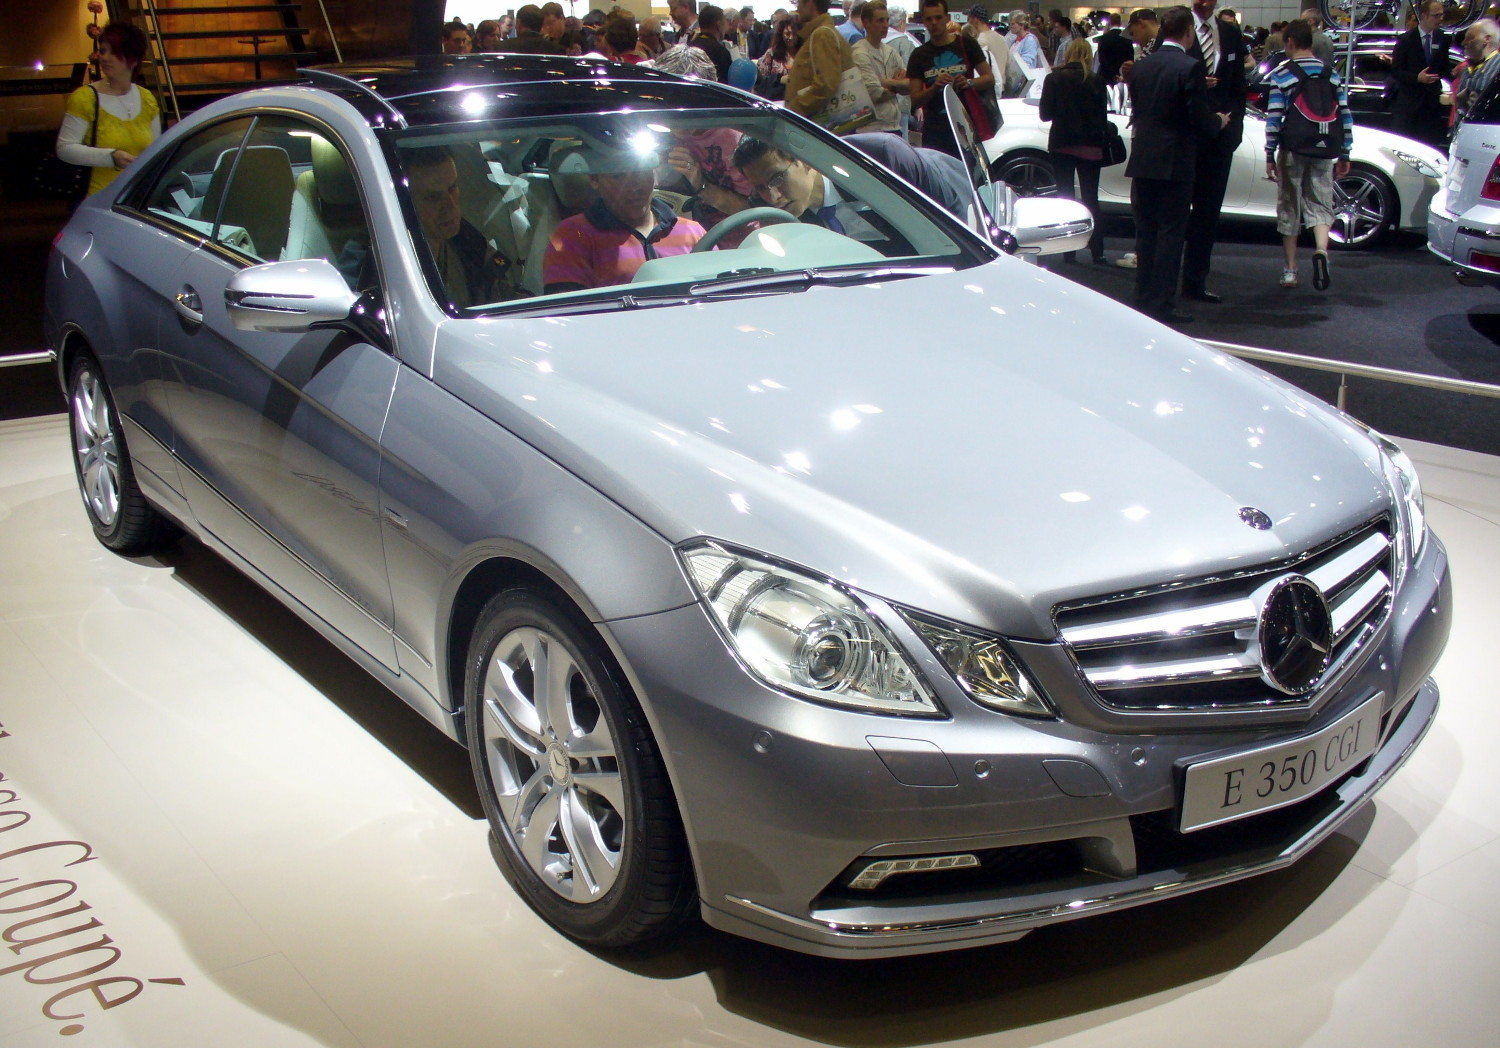 Filemercedes Benz E 350 Cgi Coupéjpg Wikimedia Commons